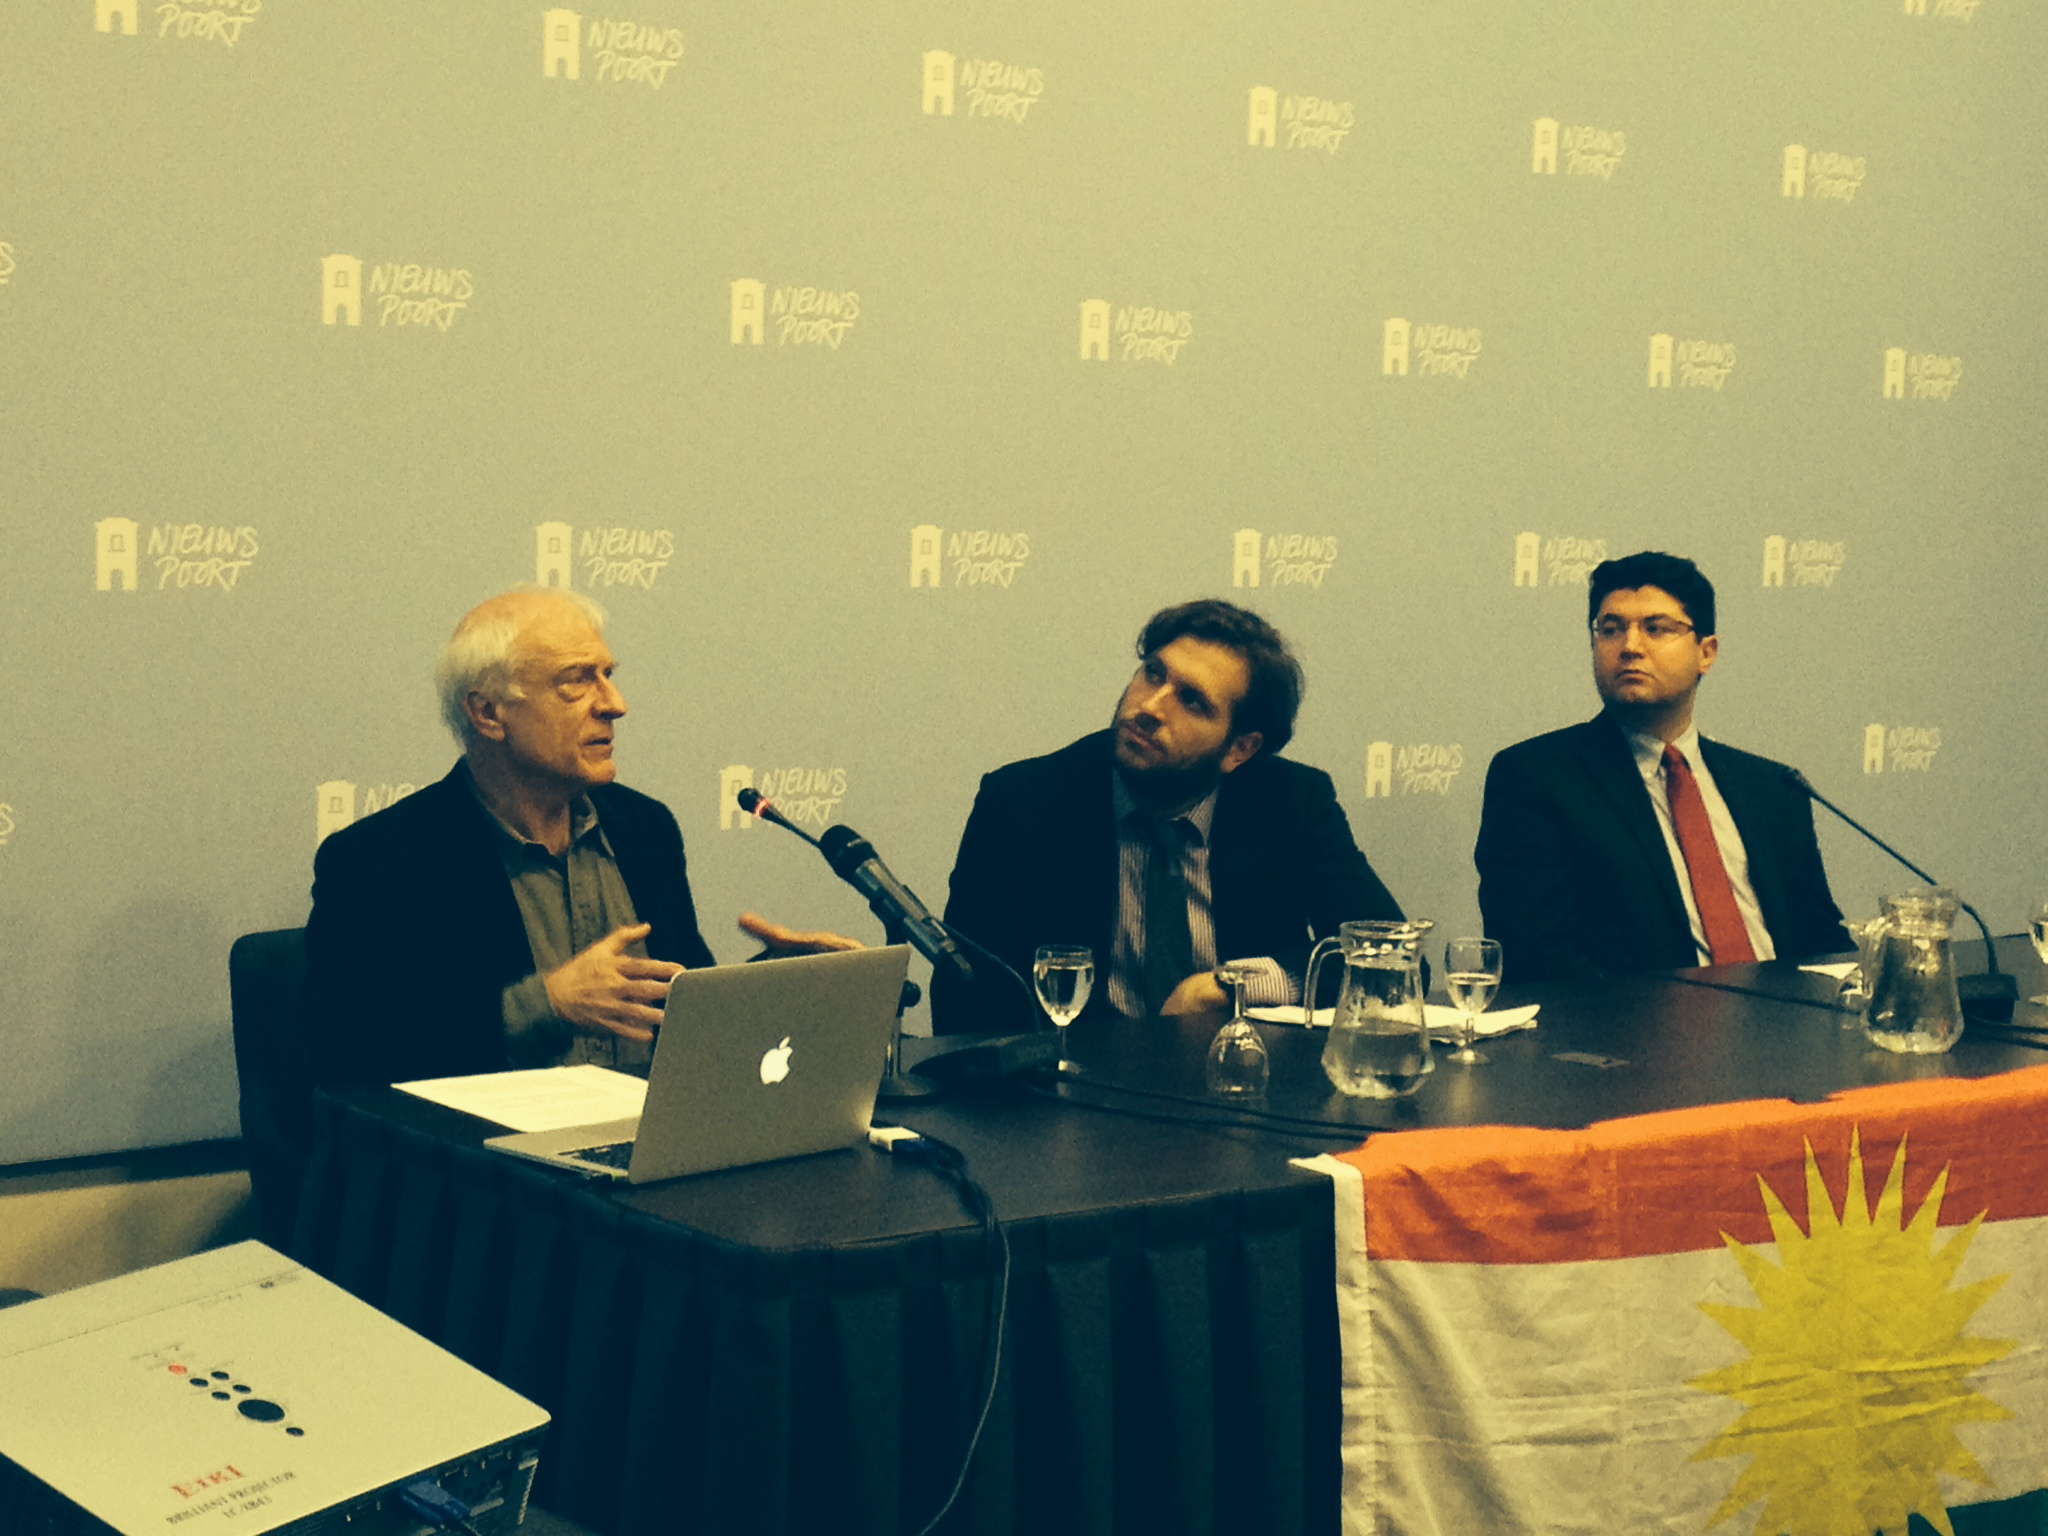 From left: Martin van Bruinessen, Professor of Comparative Studies of Contemporary Islamic Societies at the University of Utrecht (The Netherlands), UNPO Program Manager Johanna Green and Loghman Ahmedi, representative of Iranian Kurdistan to UNPO and head of foreign relations of the Democratic Party of Iranian Kurdistan (PDKI)